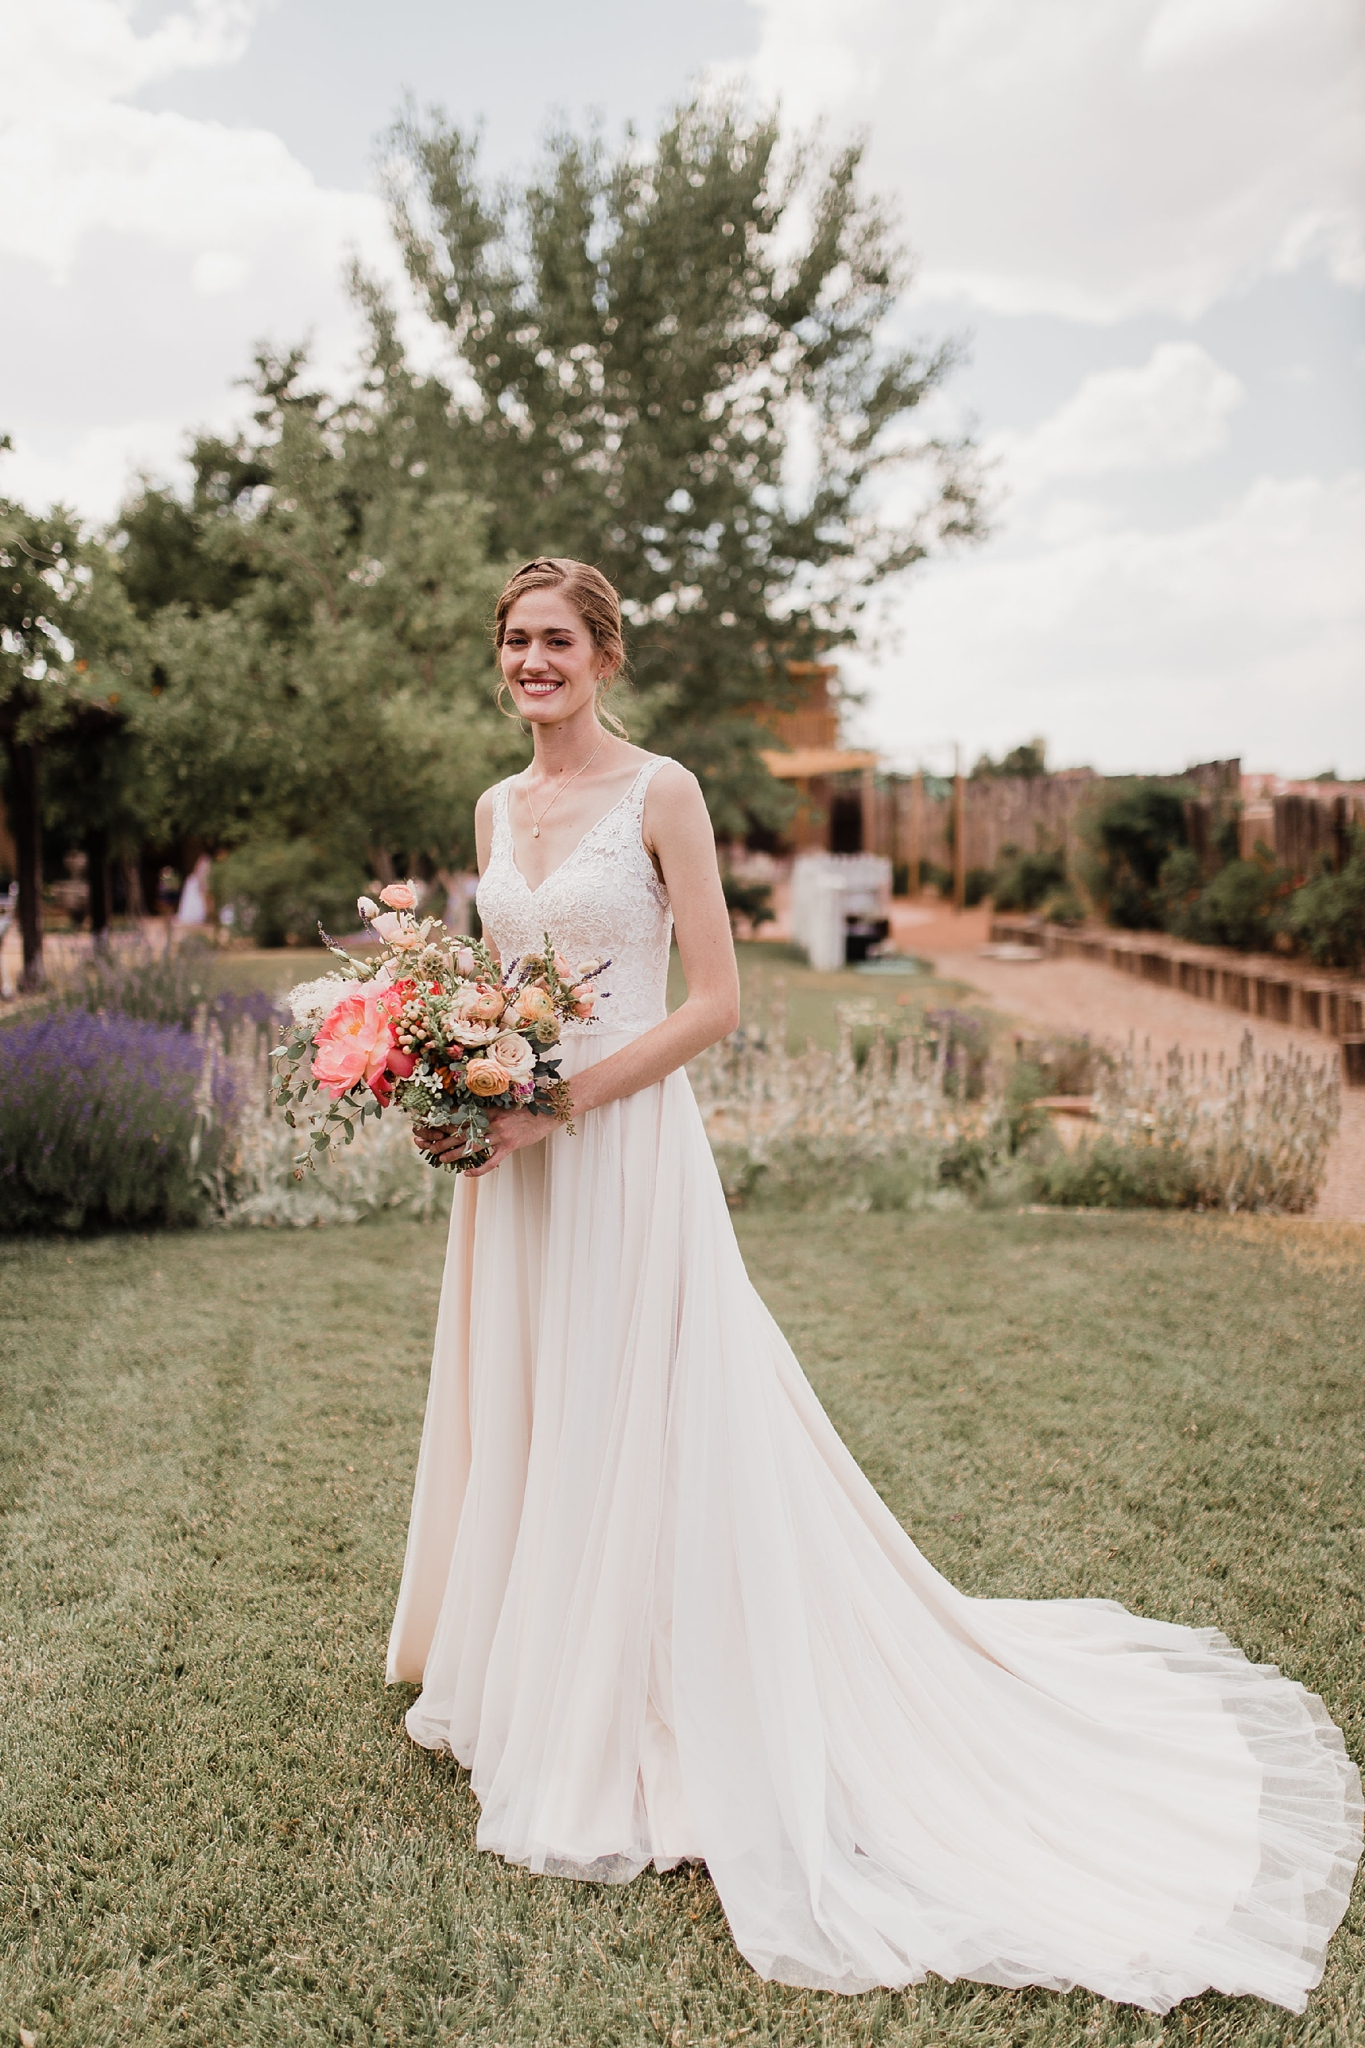 Alicia+lucia+photography+-+albuquerque+wedding+photographer+-+santa+fe+wedding+photography+-+new+mexico+wedding+photographer+-+new+mexico+wedding+-+wedding+gowns+-+bridal+gowns+-+a+line+wedding+gown_0016.jpg